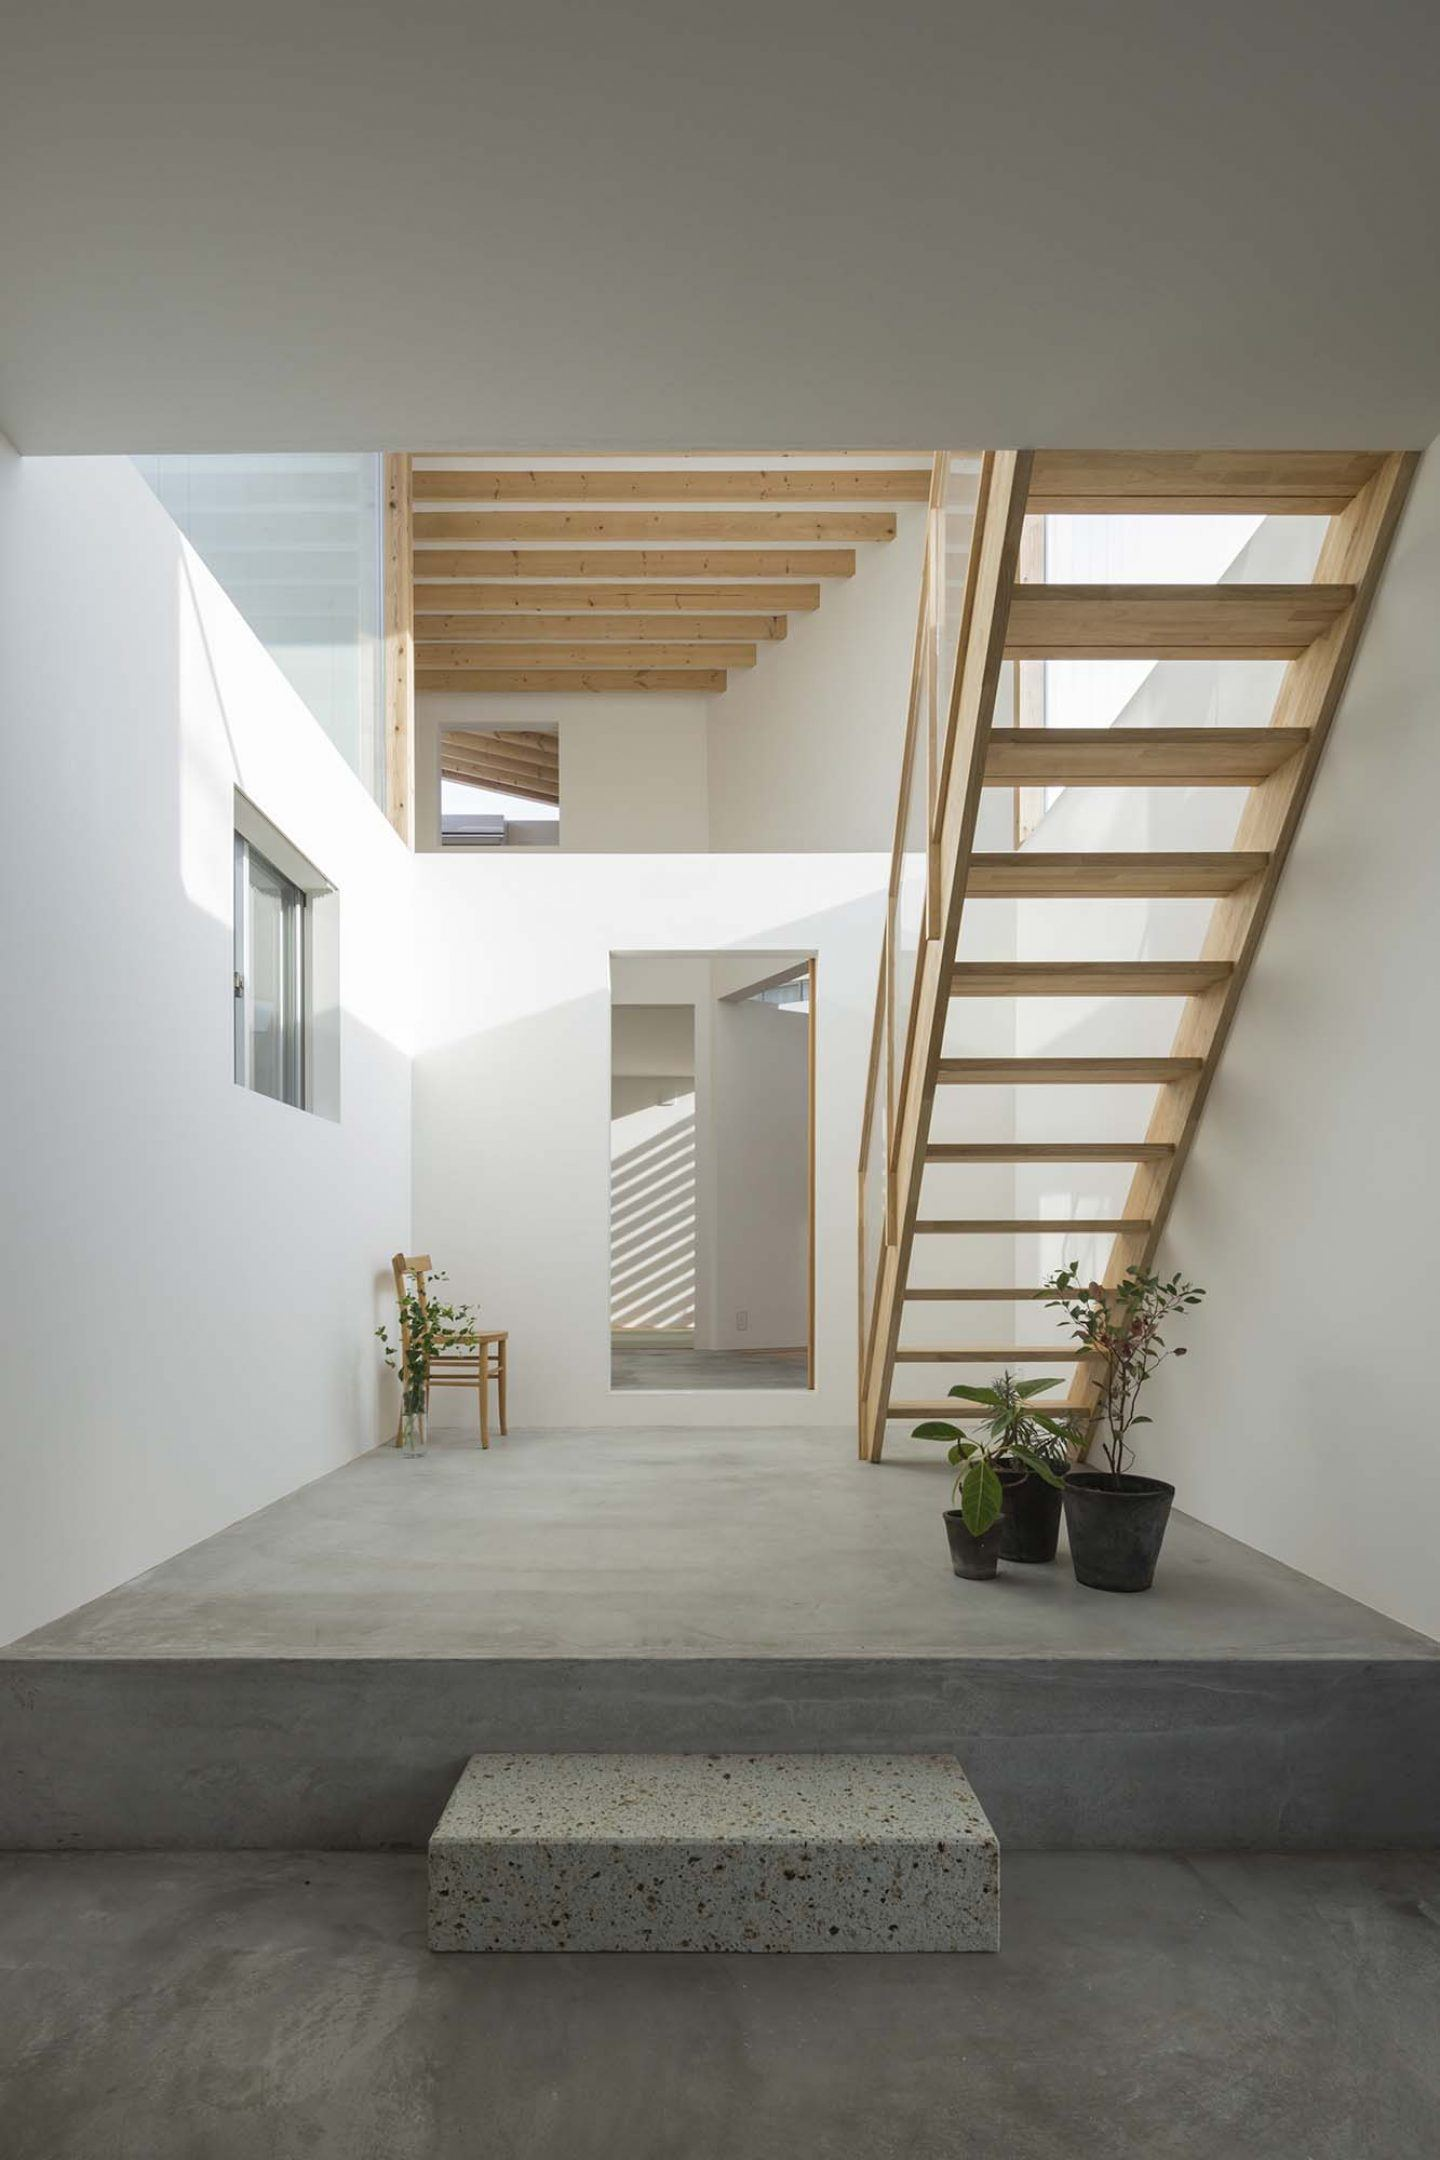 IGNANT-Architecture-Tato-Architects-House-In-Hokusetsu-4